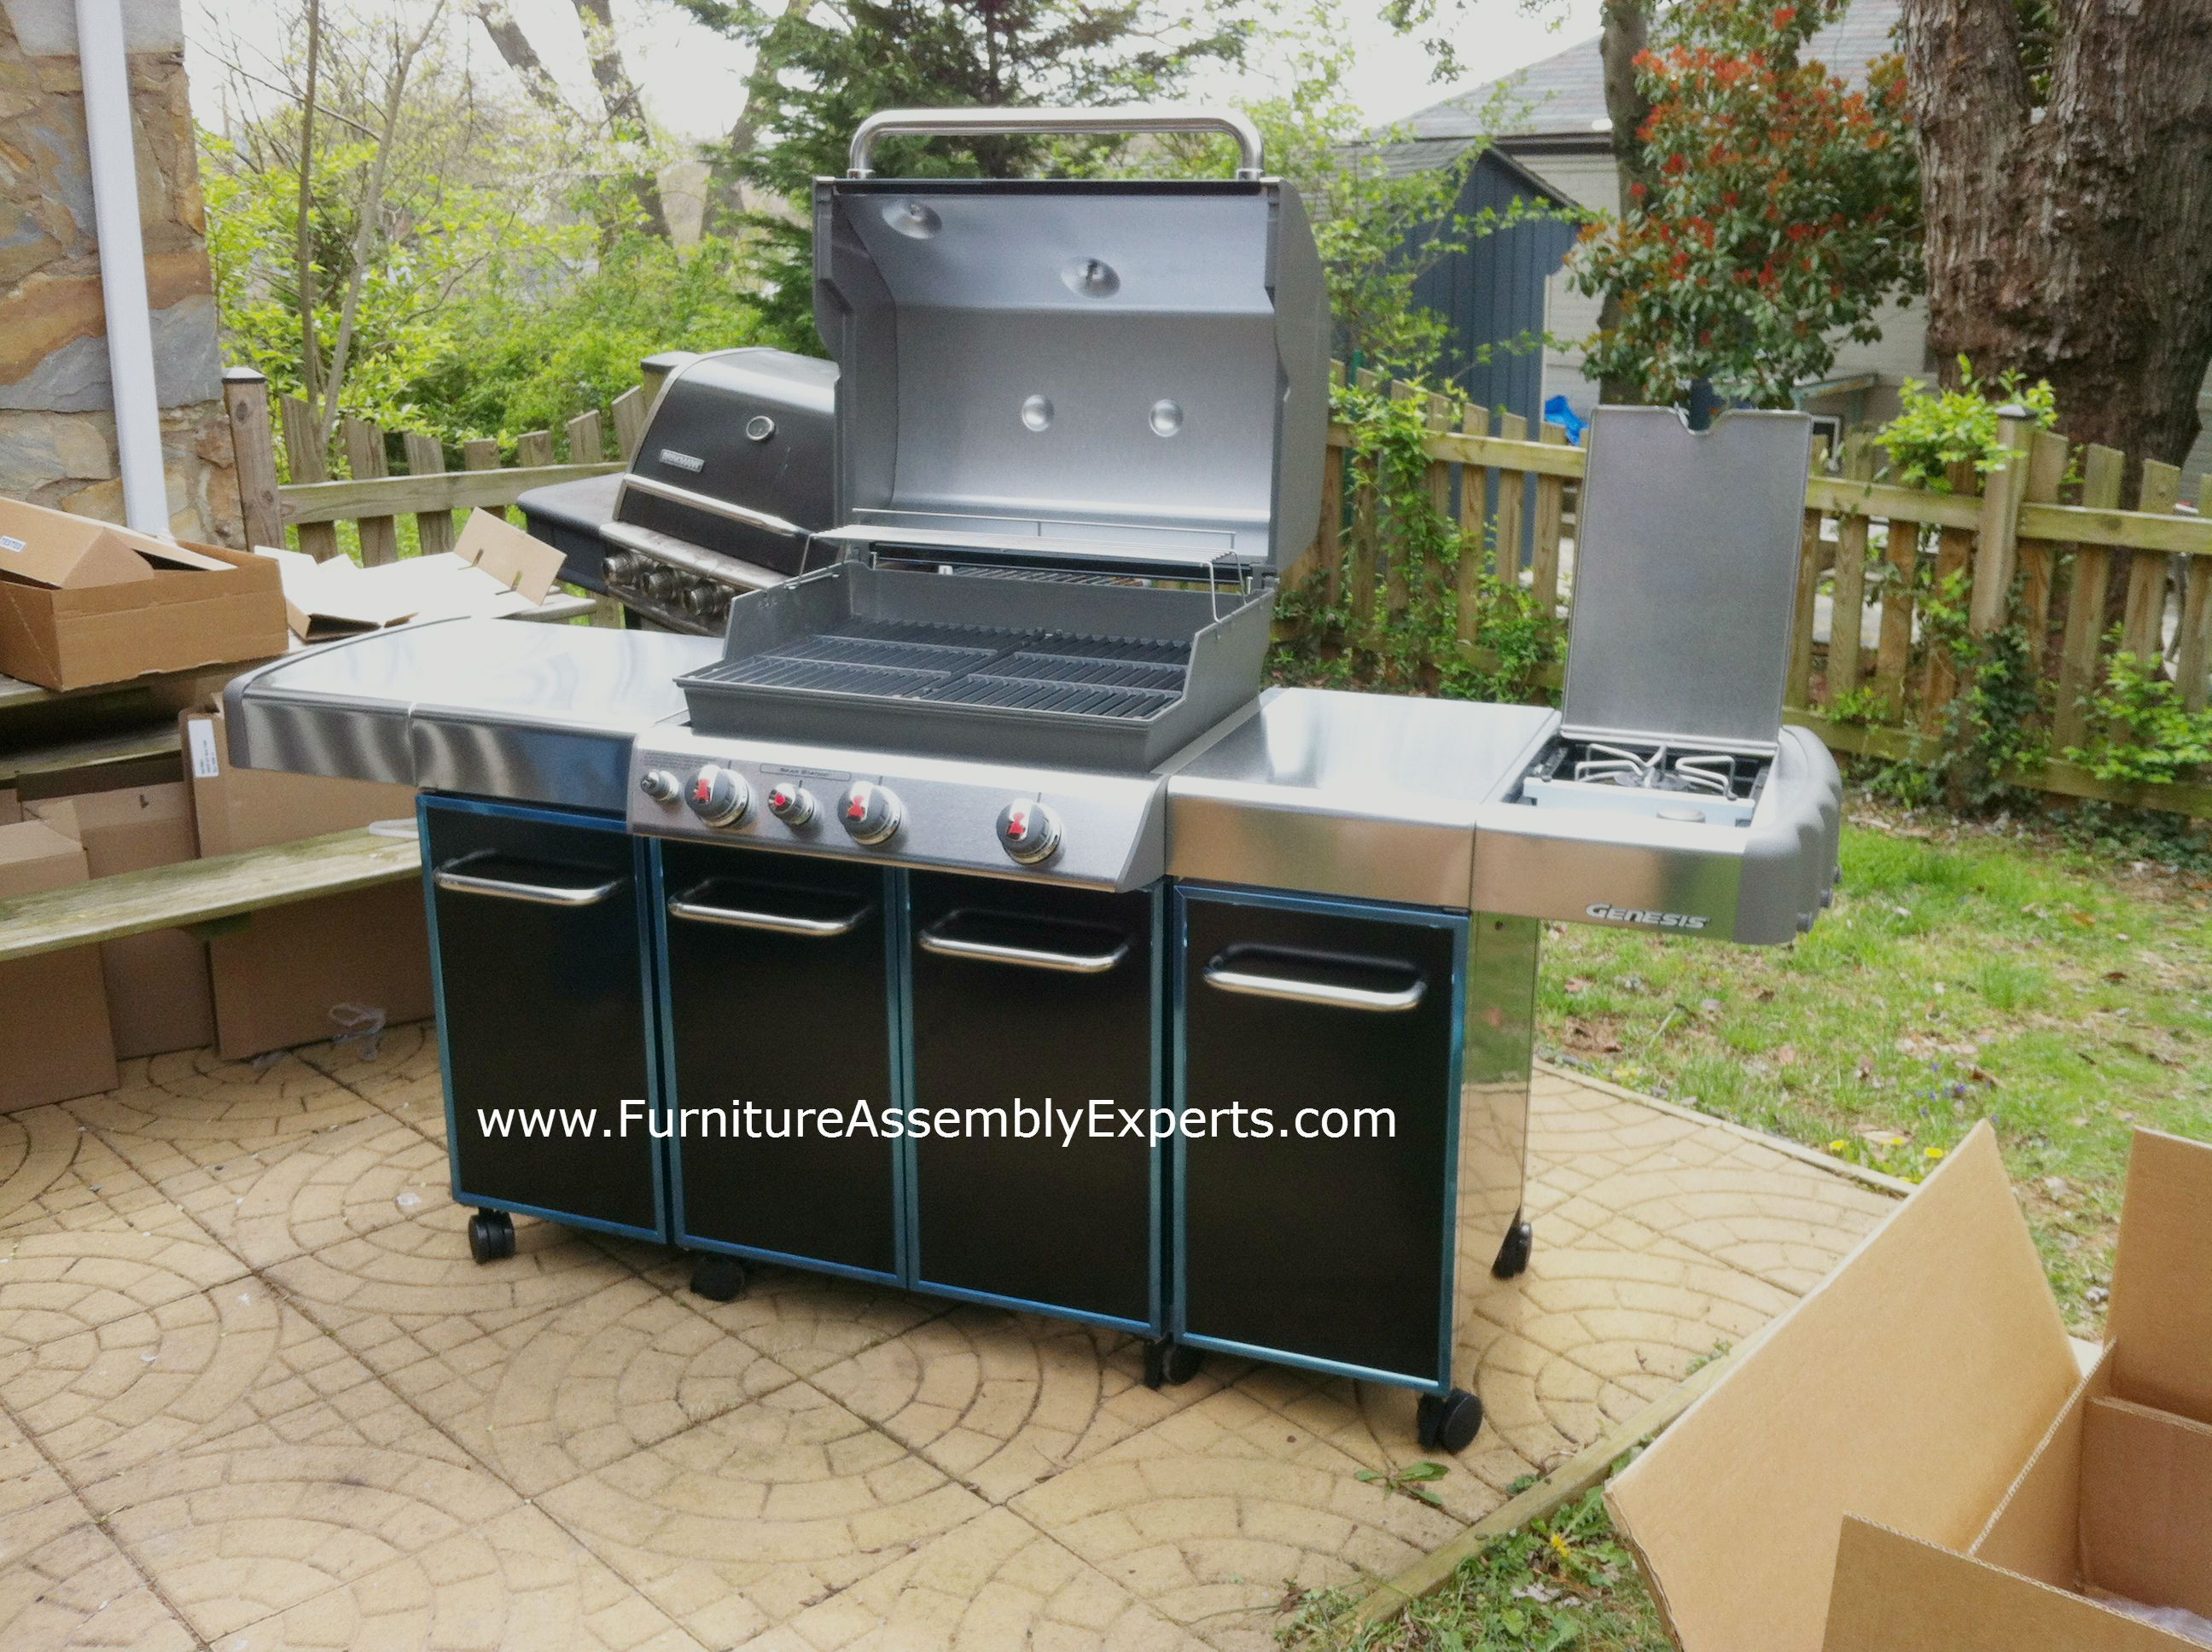 weber genesis gas grill assembled in downtown baltimore MD by